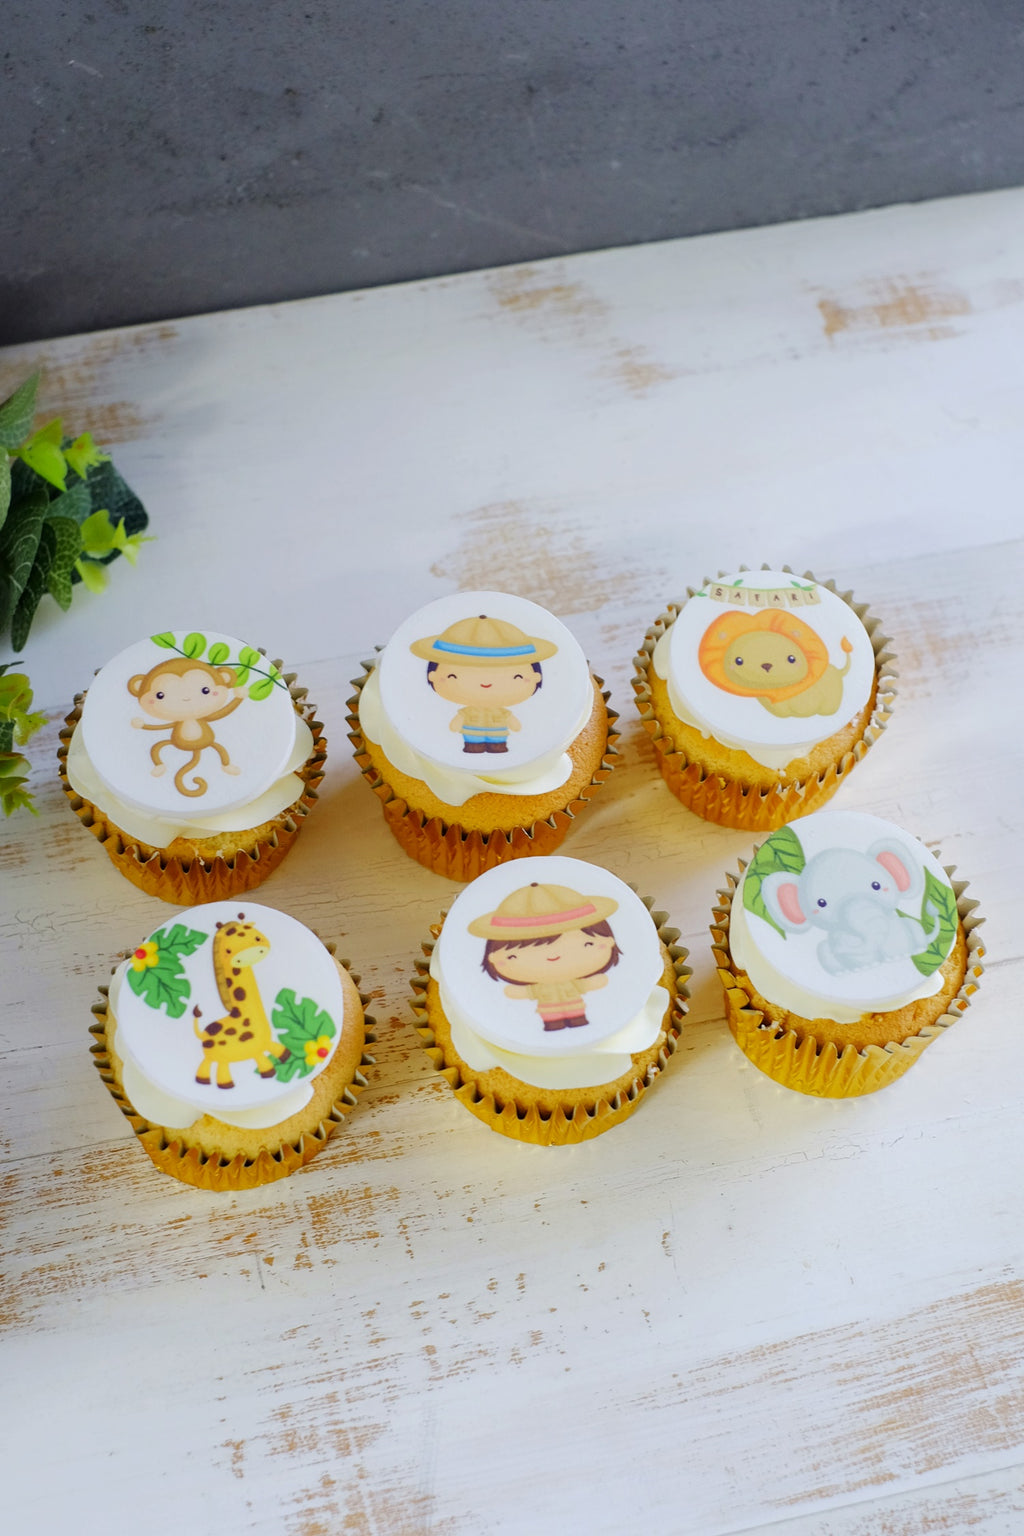 Edible Icing Cupcakes (From $3.75 / $5 Each)